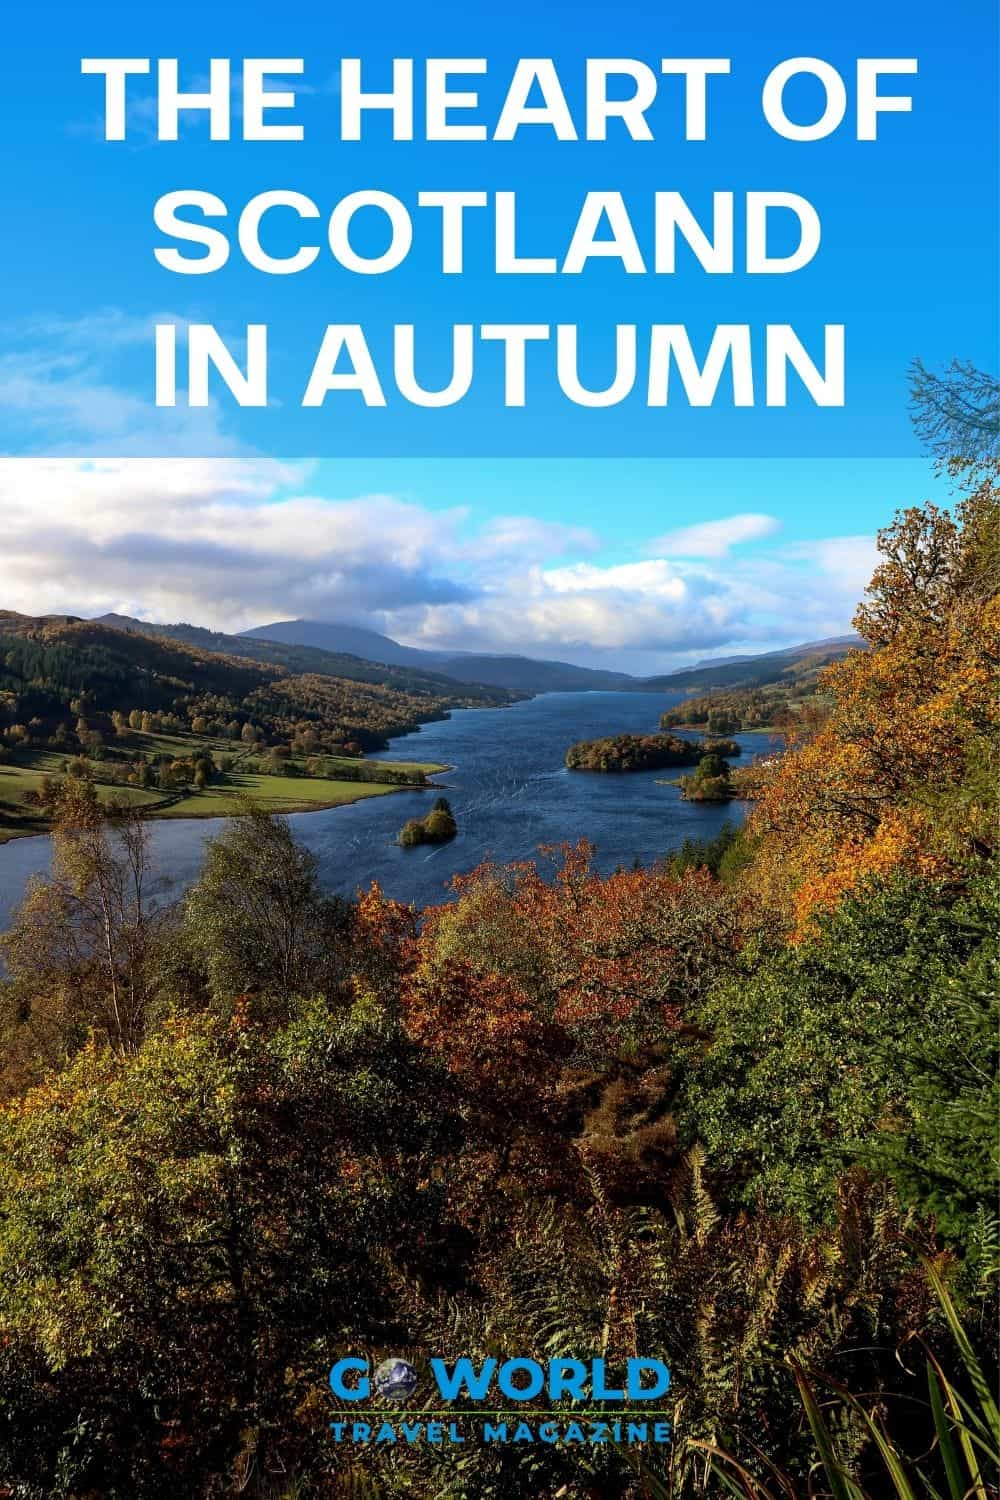 Autumn in Scotland is a beautiful time to visit. Perthsire, in the Heart of Scotland, is a great destination to enjoy Scotland's fall colors. #scotlandtravel #autumninscotland